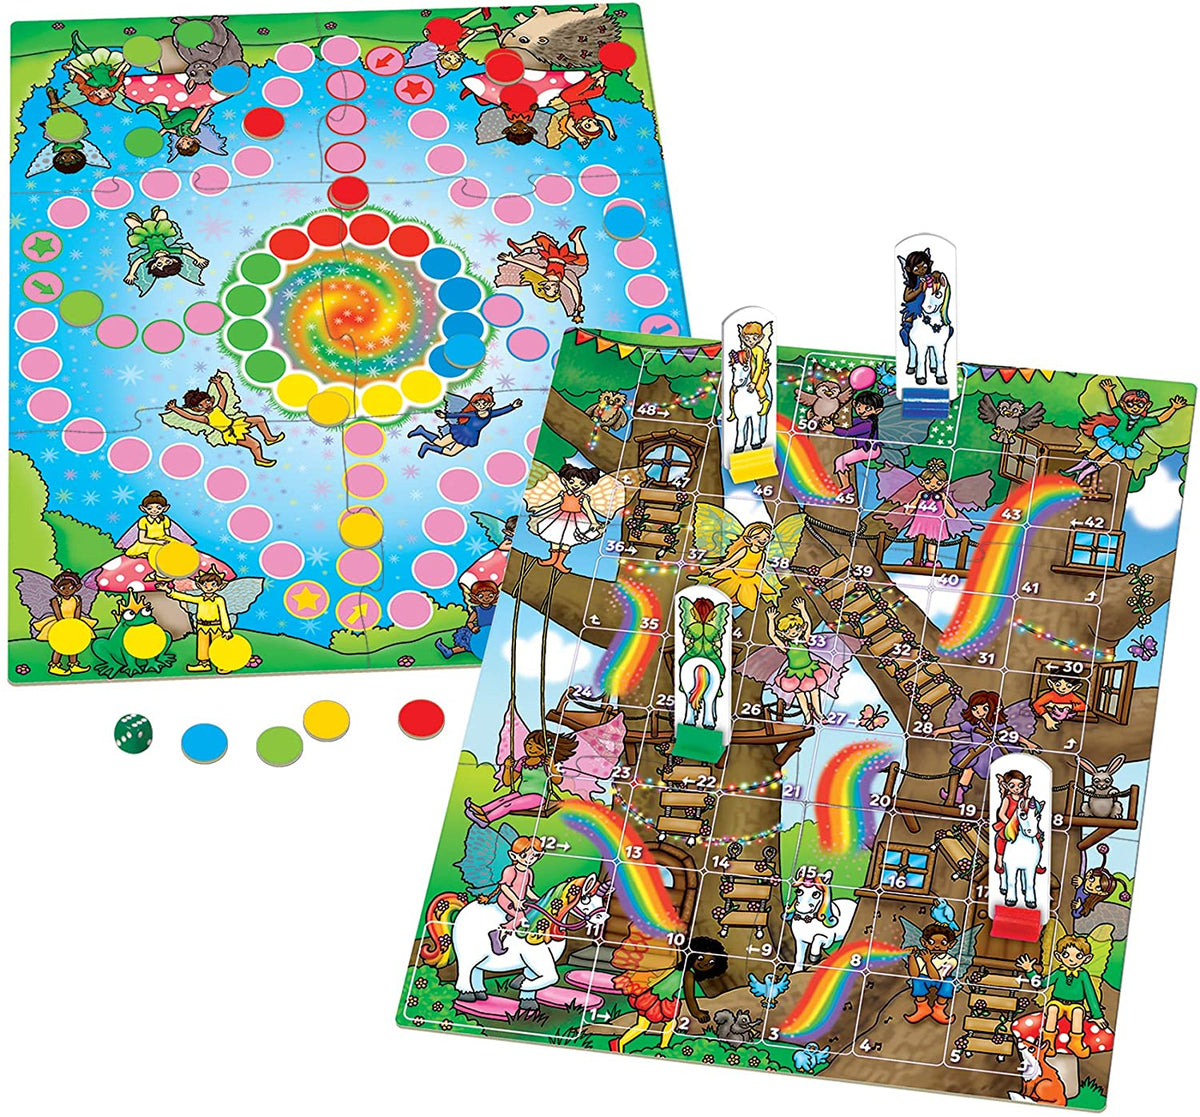 ORCHARD TOYS Fairy Snakes and Ladders/Ludo